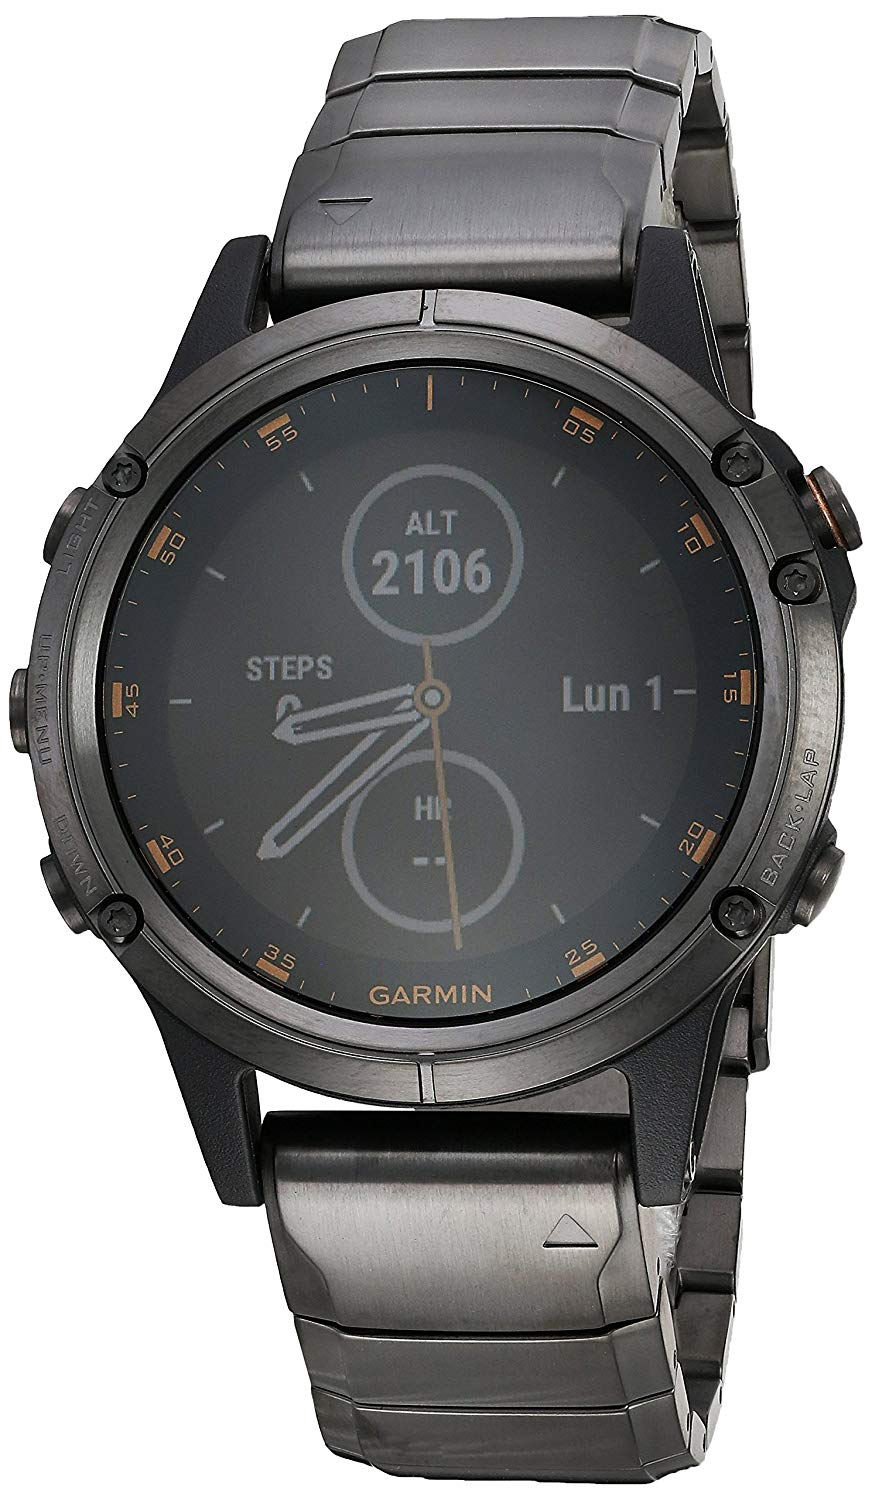 Garmin Fenix 5 Plus Gray Dlc Titanium The Time Store1